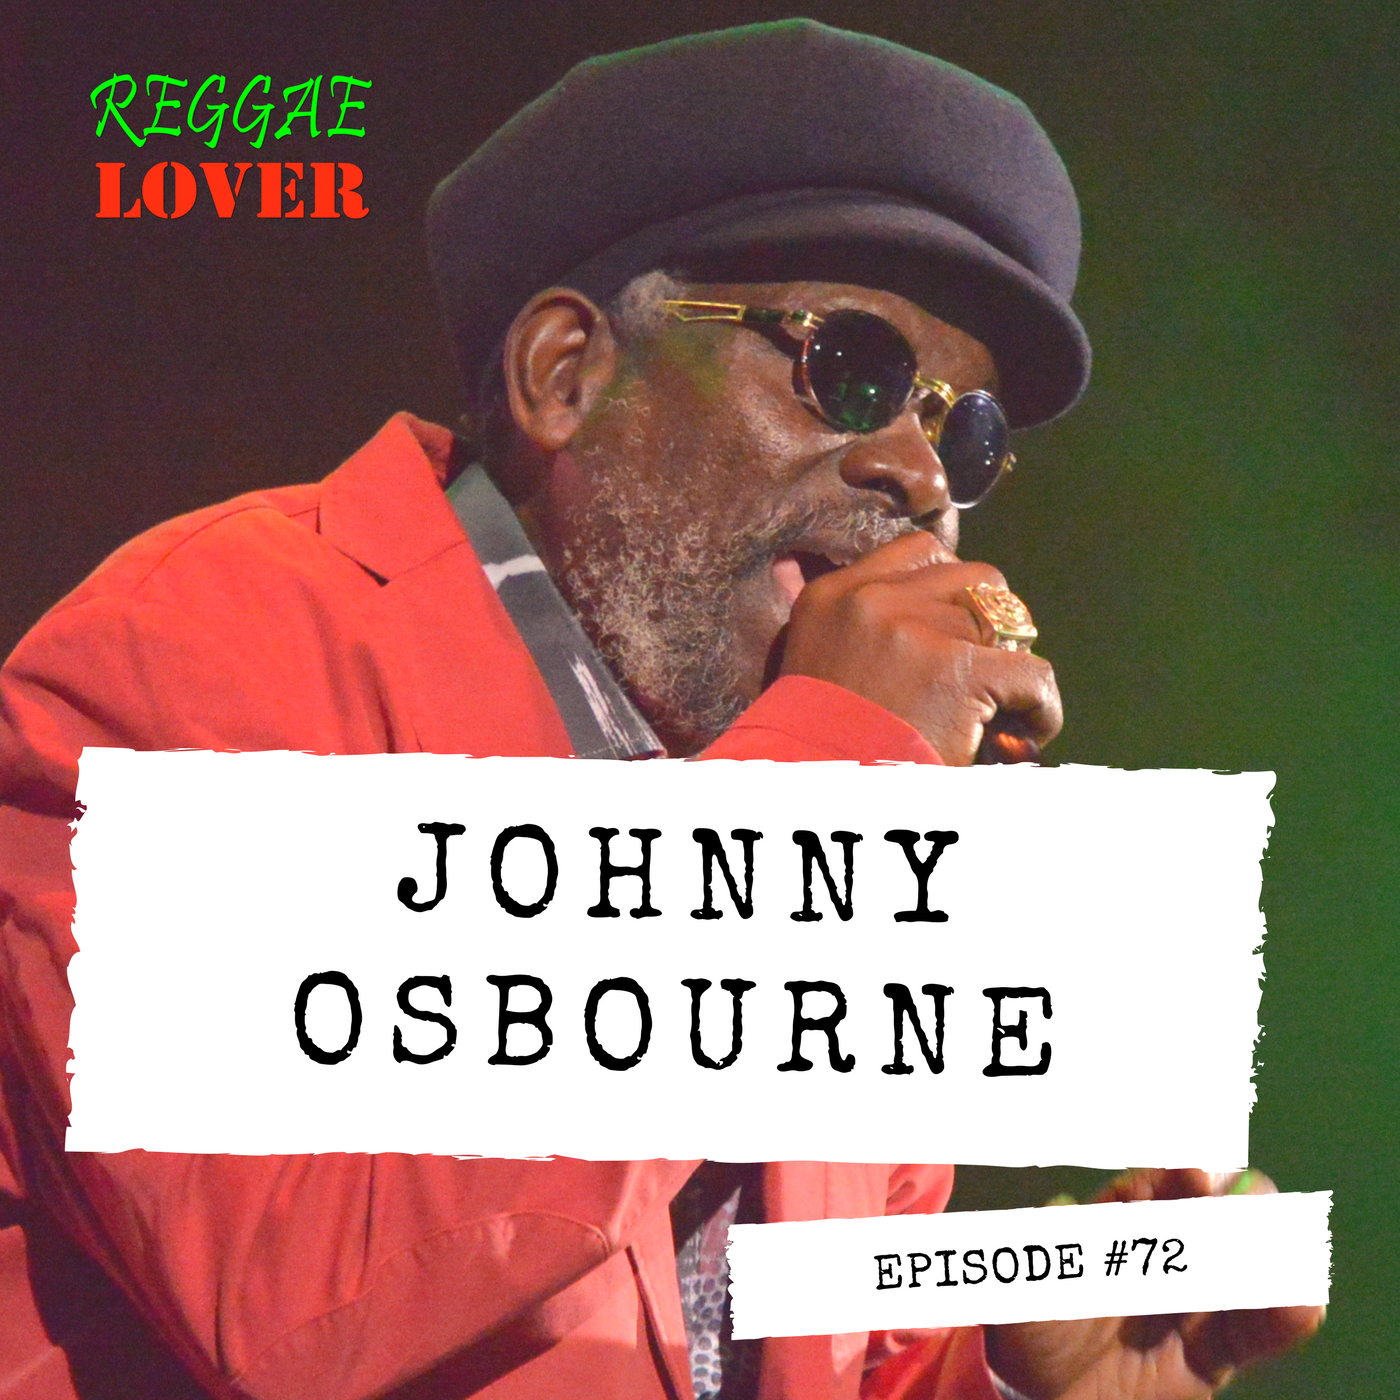 HIGHLANDA SOUND #Reggae 72 - Reggae Lover Podcast - Johnny Osbourne, The Dancehall Godfather In playlist: THE REGGAE LOVER PODCA